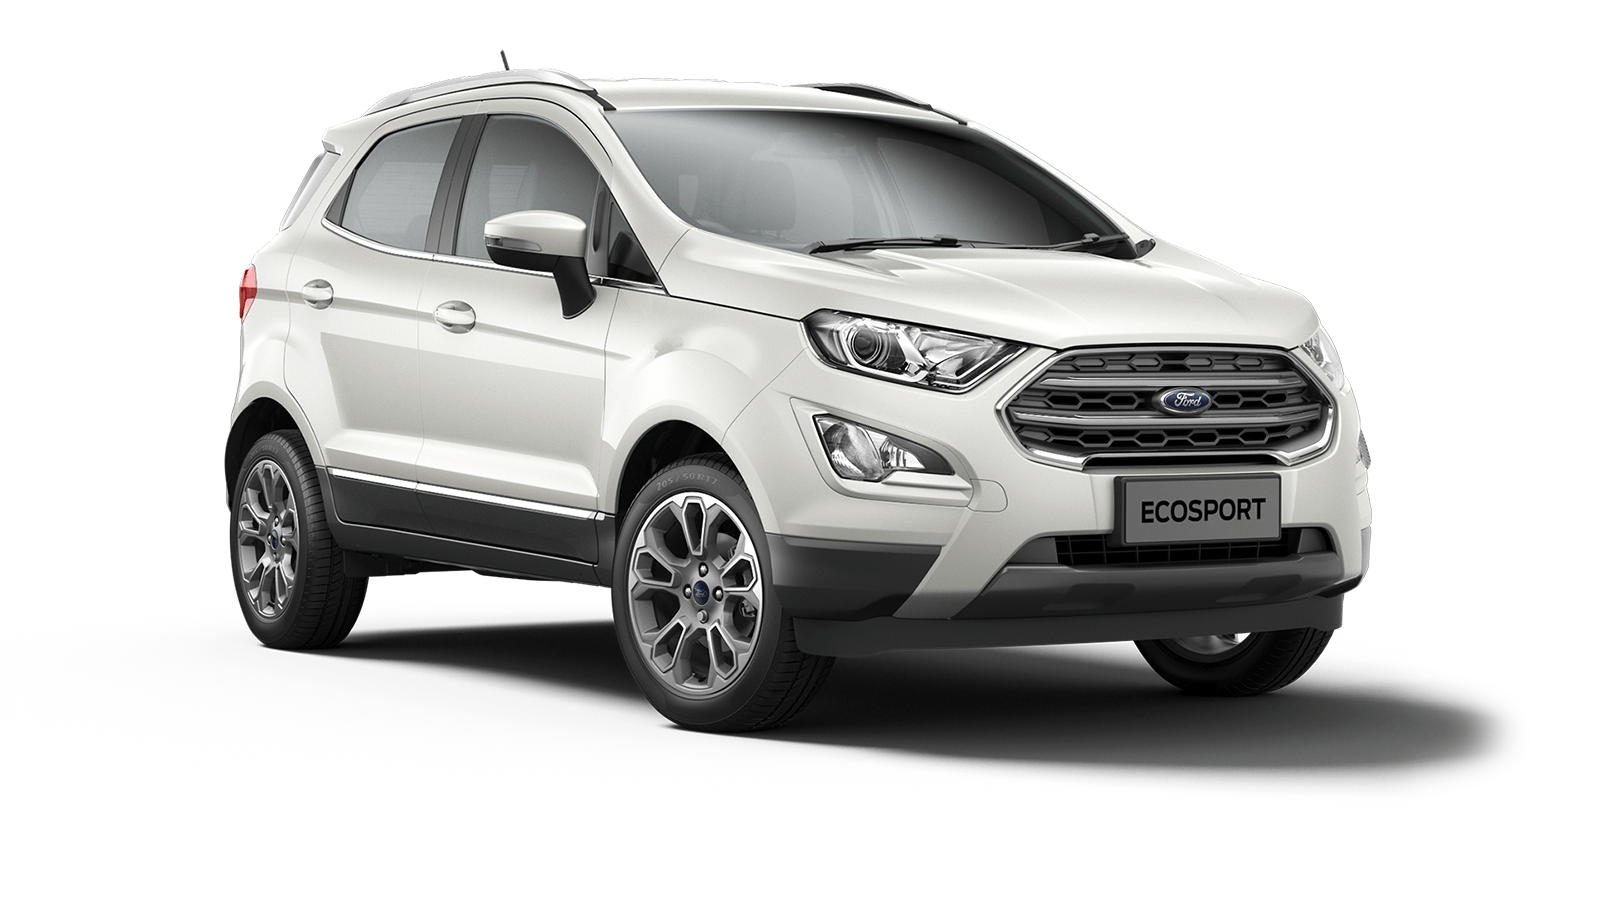 https://www.dealerinternet.co.uk/images/B515%20ECOSPORT/2019/5%20Door/Titanium/WHITE-PLATINUM.png